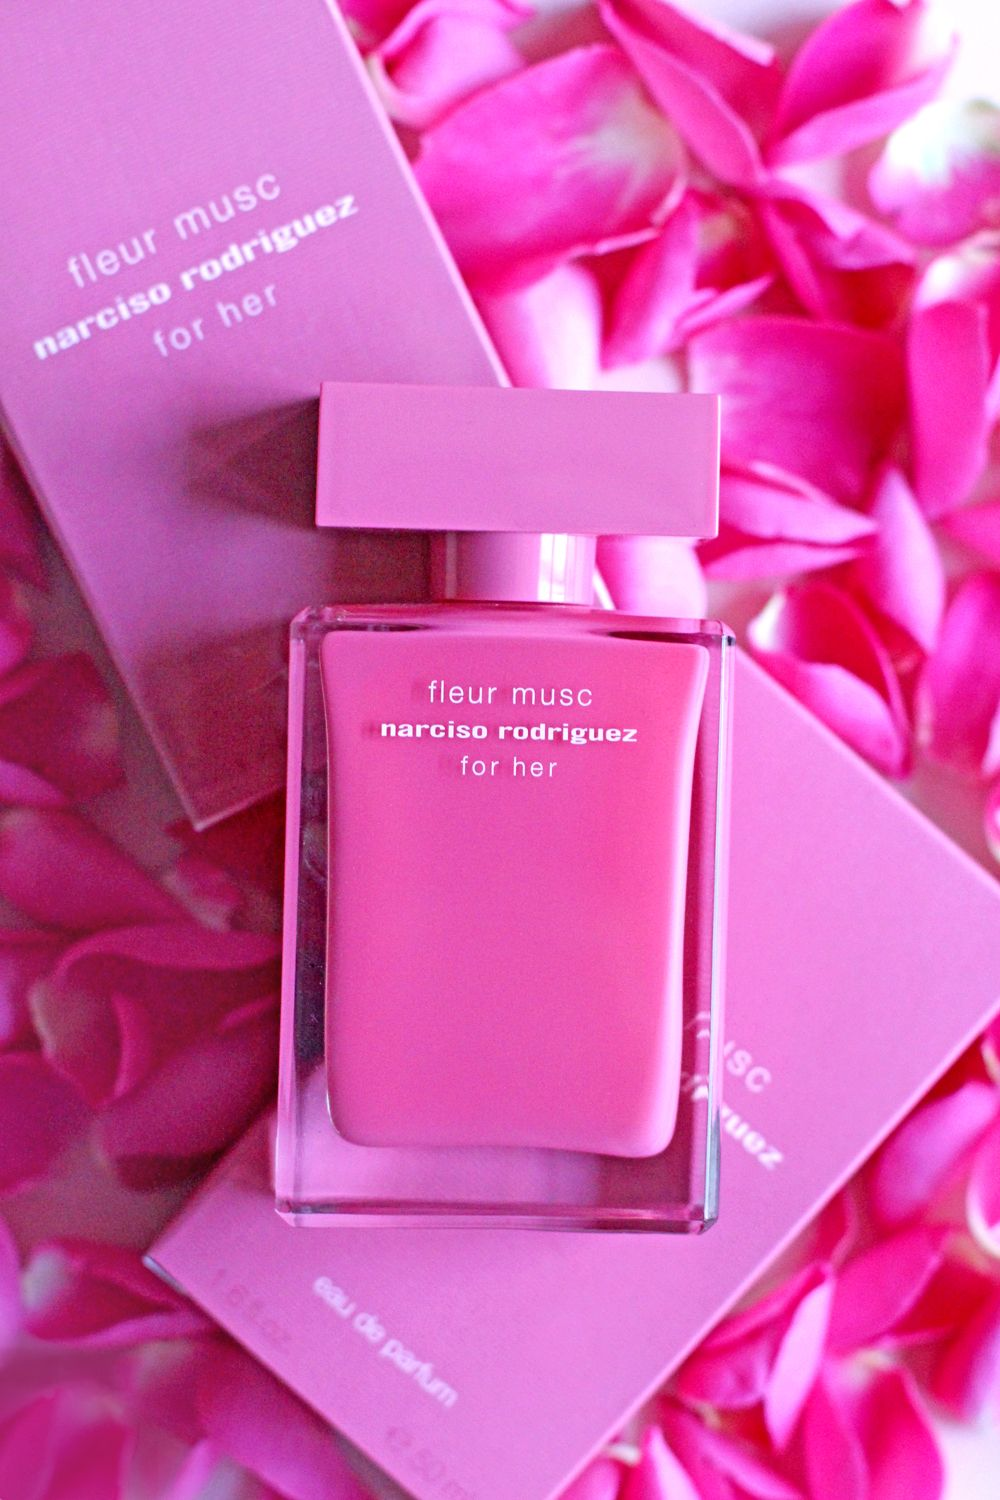 Fleur Musc Narciso Rodriguez for her